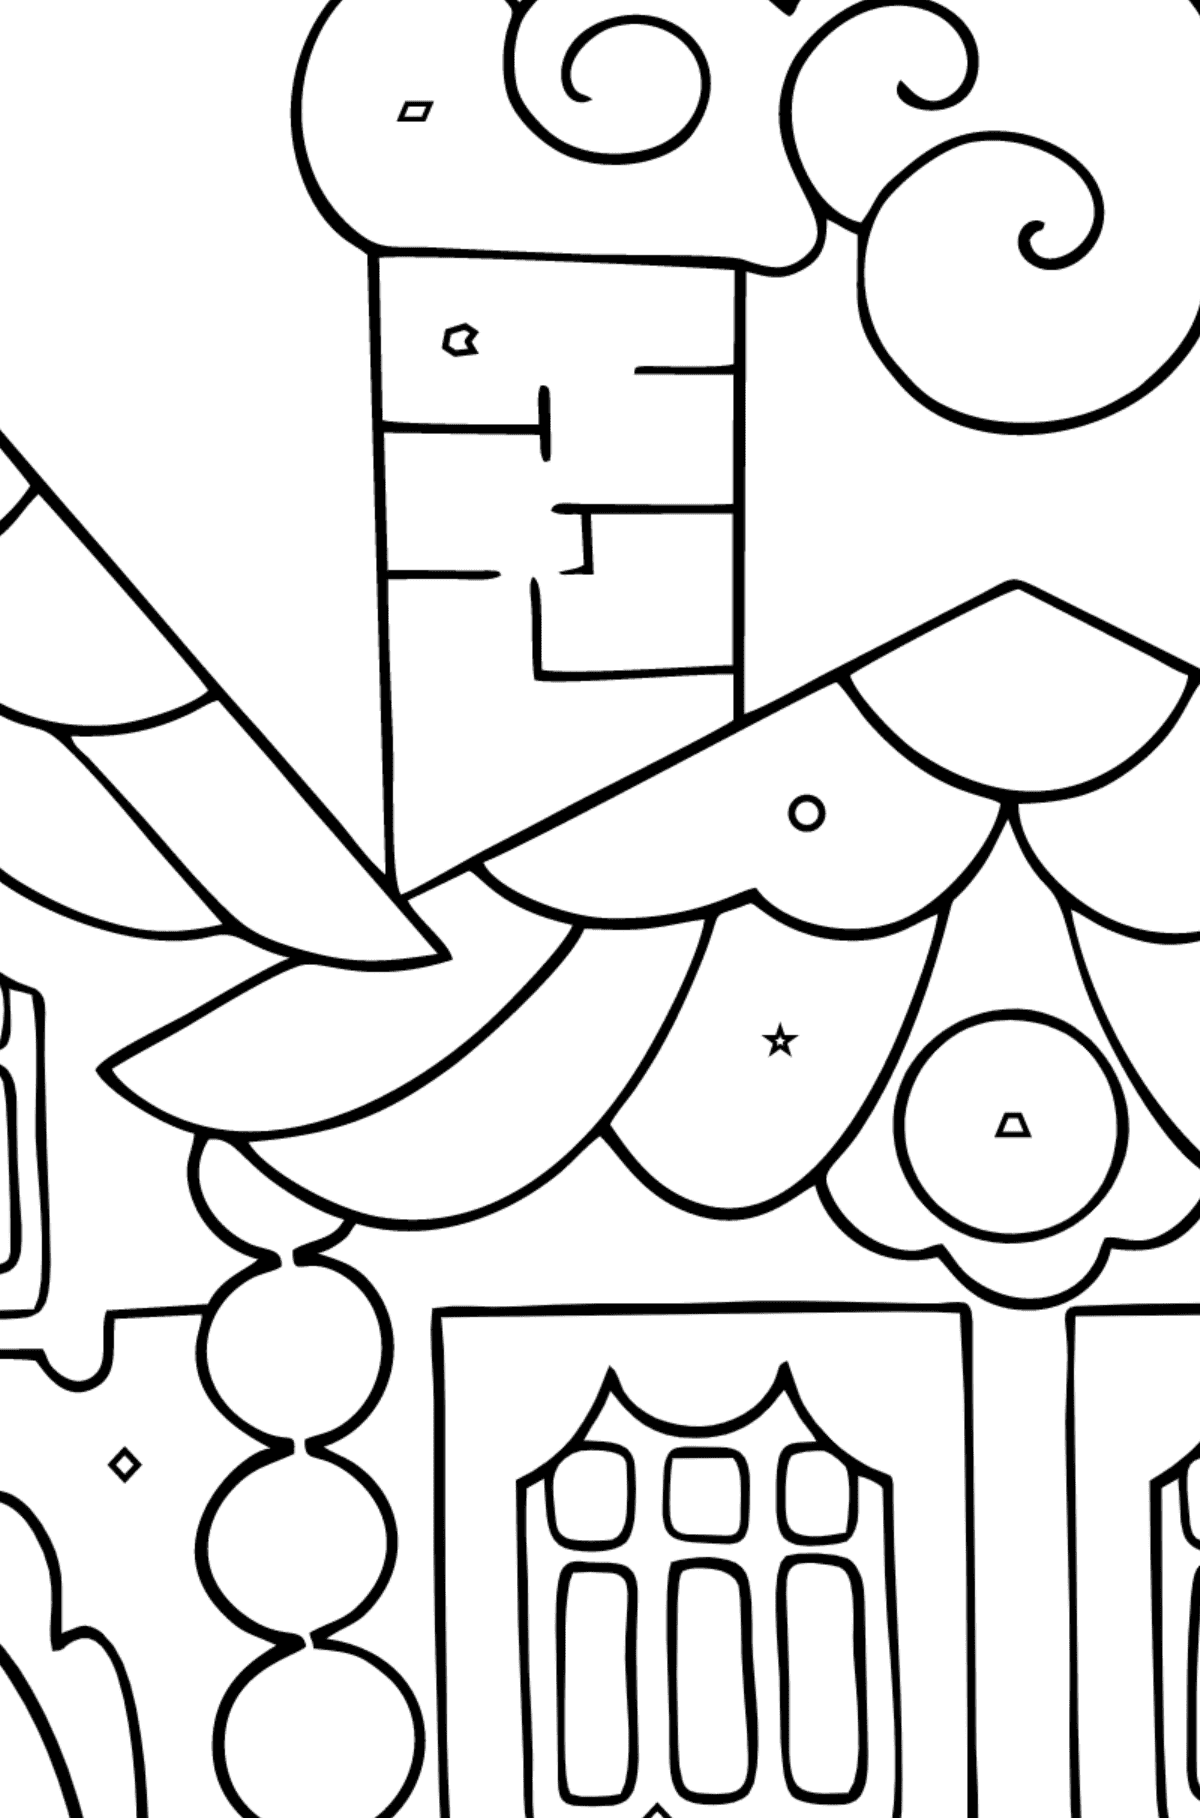 Simple Coloring Page - A House in the Forest - Coloring by Geometric Shapes for Kids